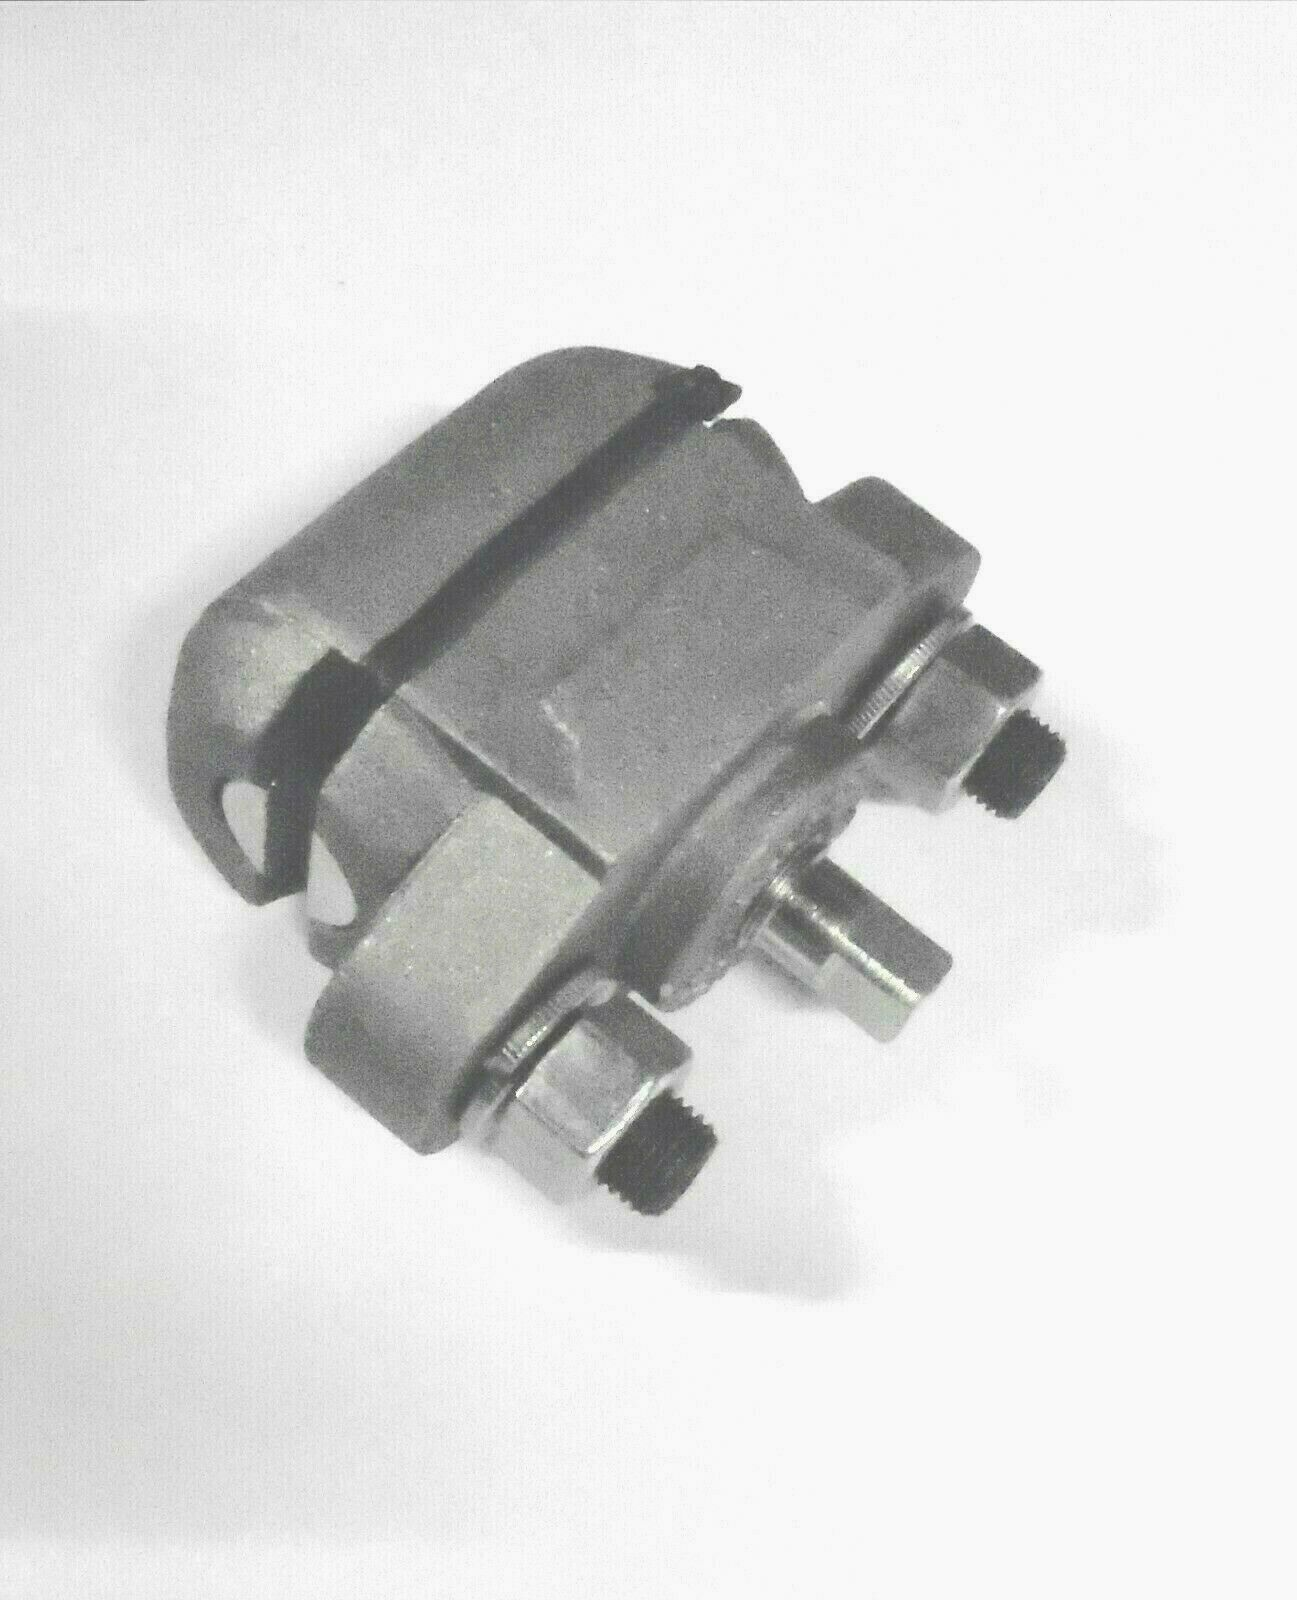 BRAKE ADJUSTER REAR x1 (Armstrong Siddeley 234 & 236) (** From 56- 57 Only **)